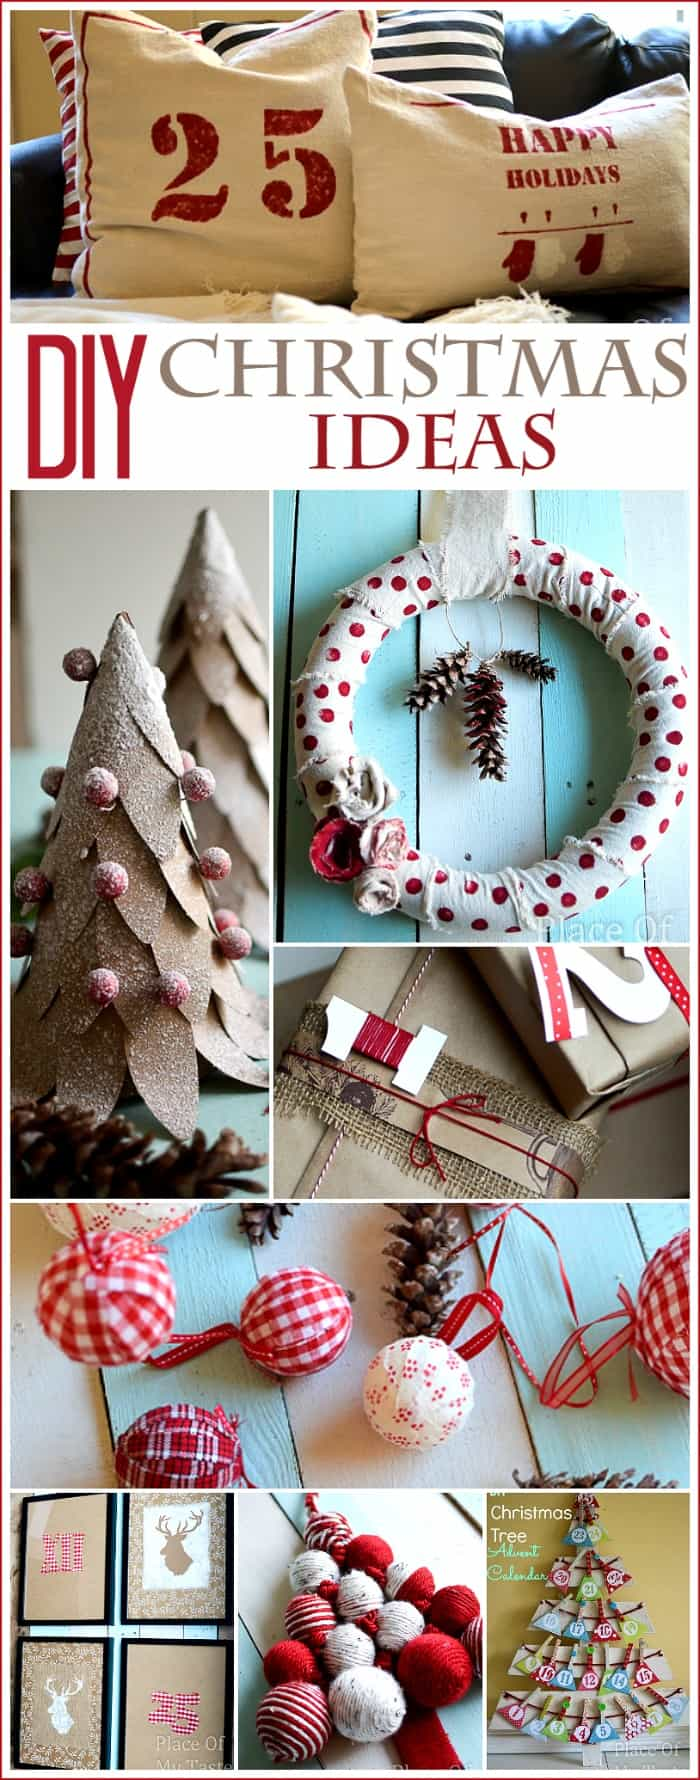 DIY-CHRISTMAS-IDEAS-Placeofmytaste.com_